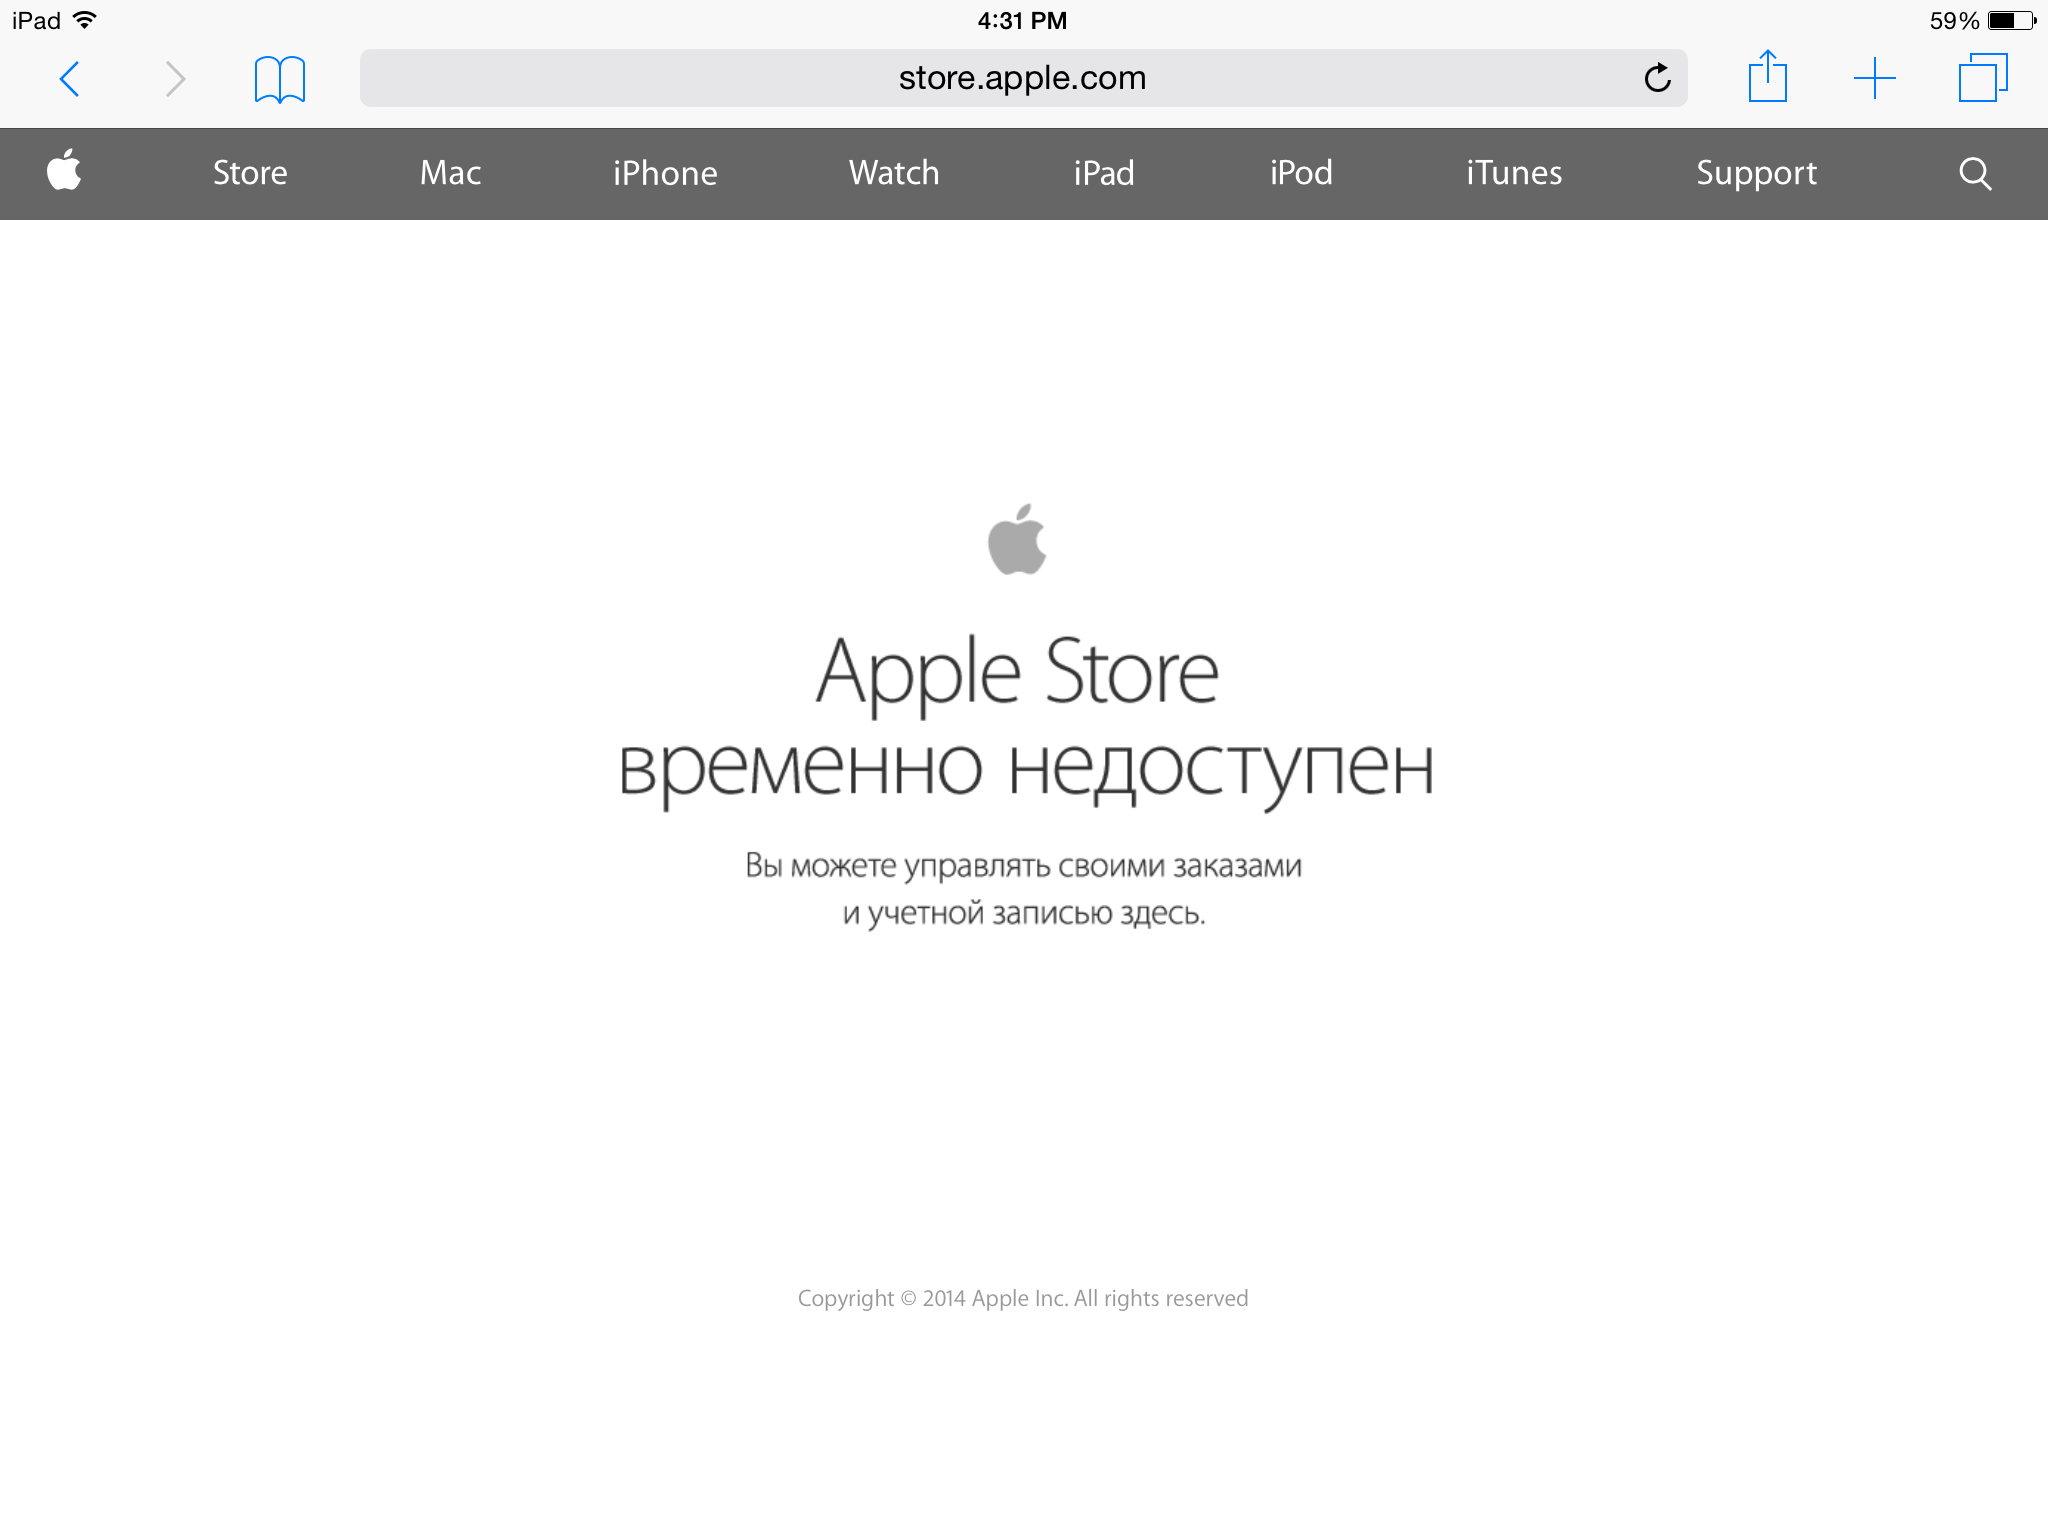 Apple's online store in Russia